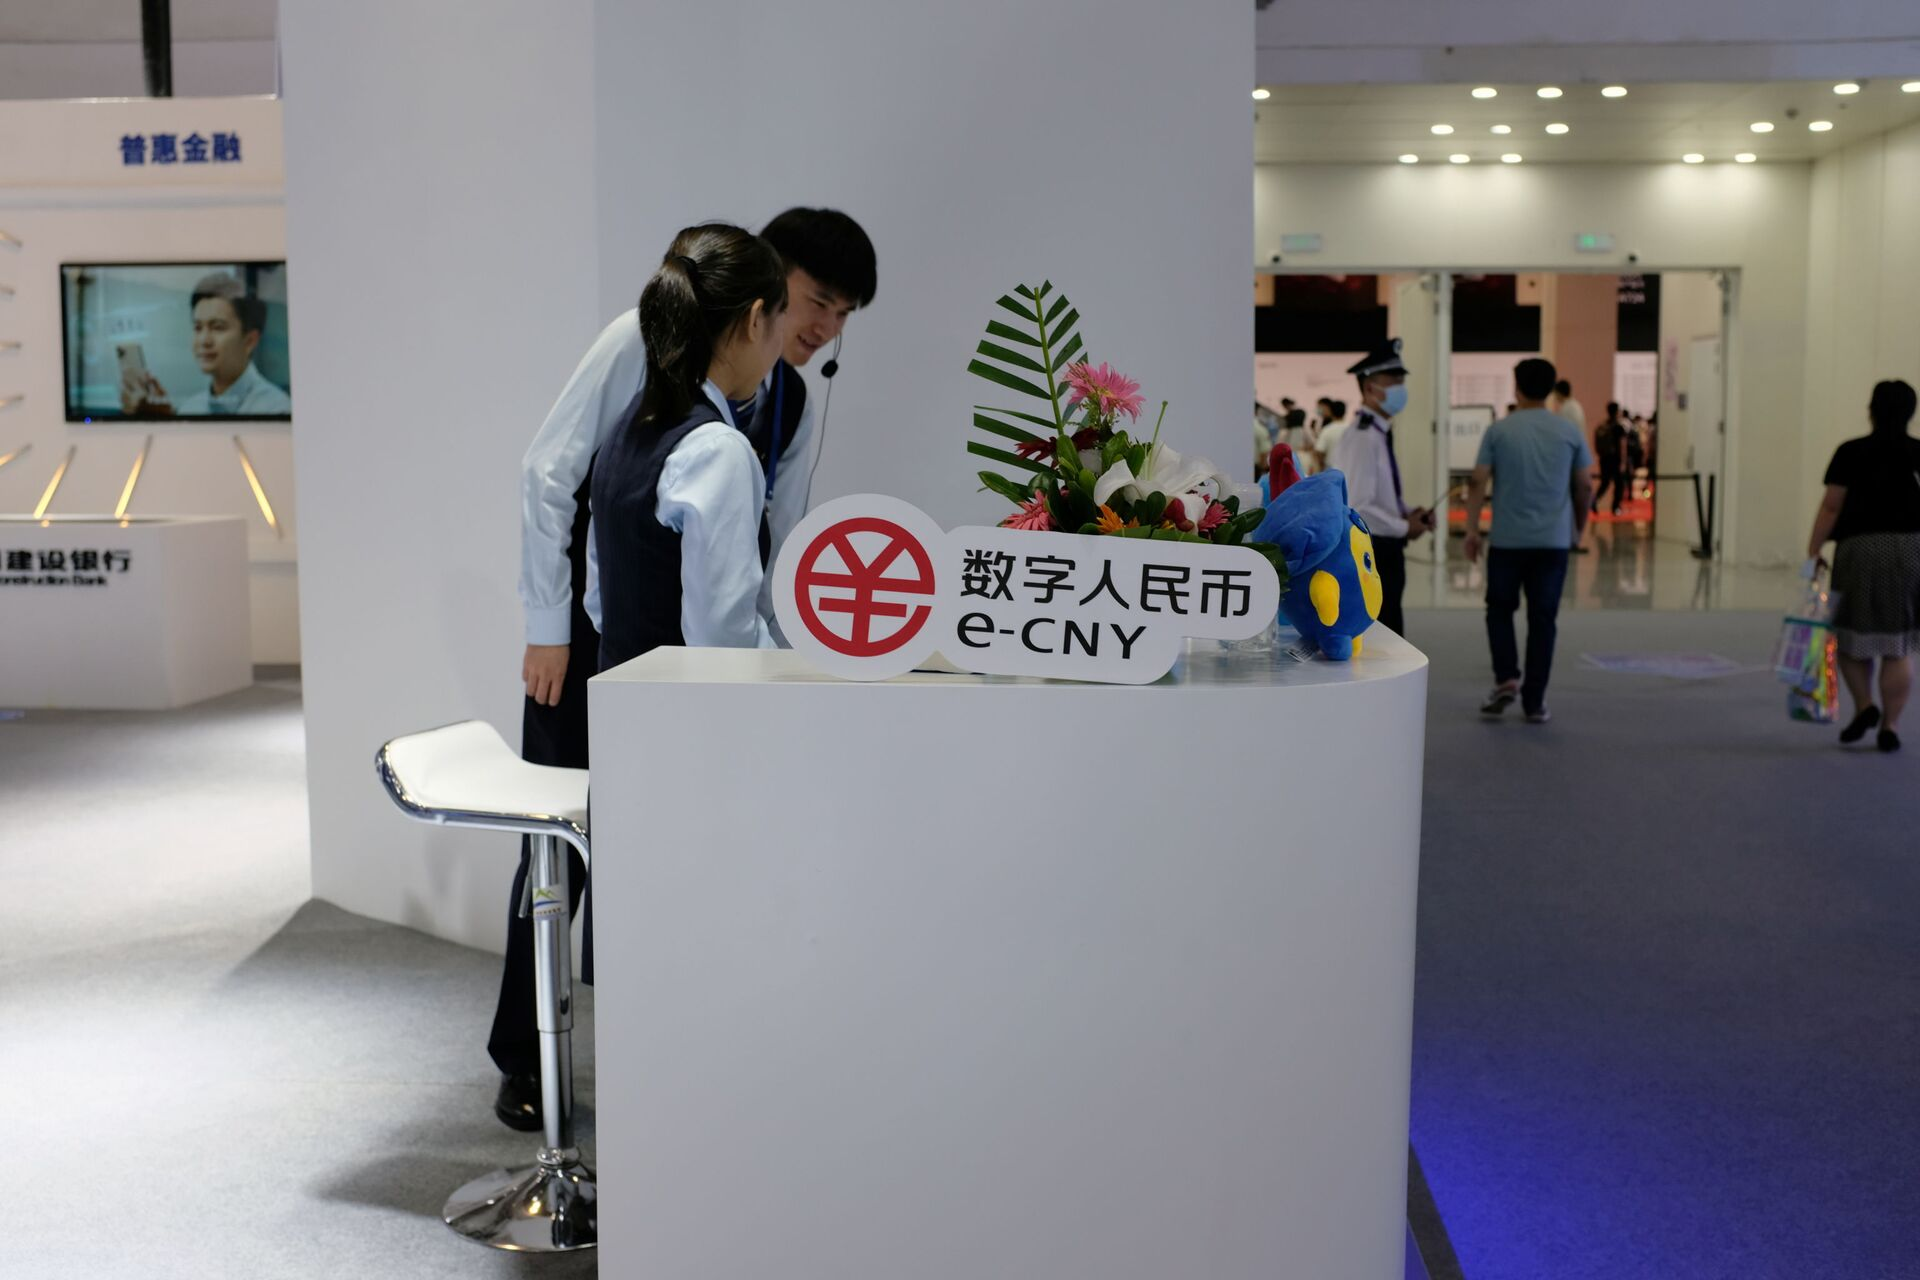 Staff members stand next to a sign of China's digital yuan, or e-CNY, at the World Artificial Intelligence Conference (WAIC) in Shanghai, China July 8, 2021. - Sputnik International, 1920, 07.09.2021